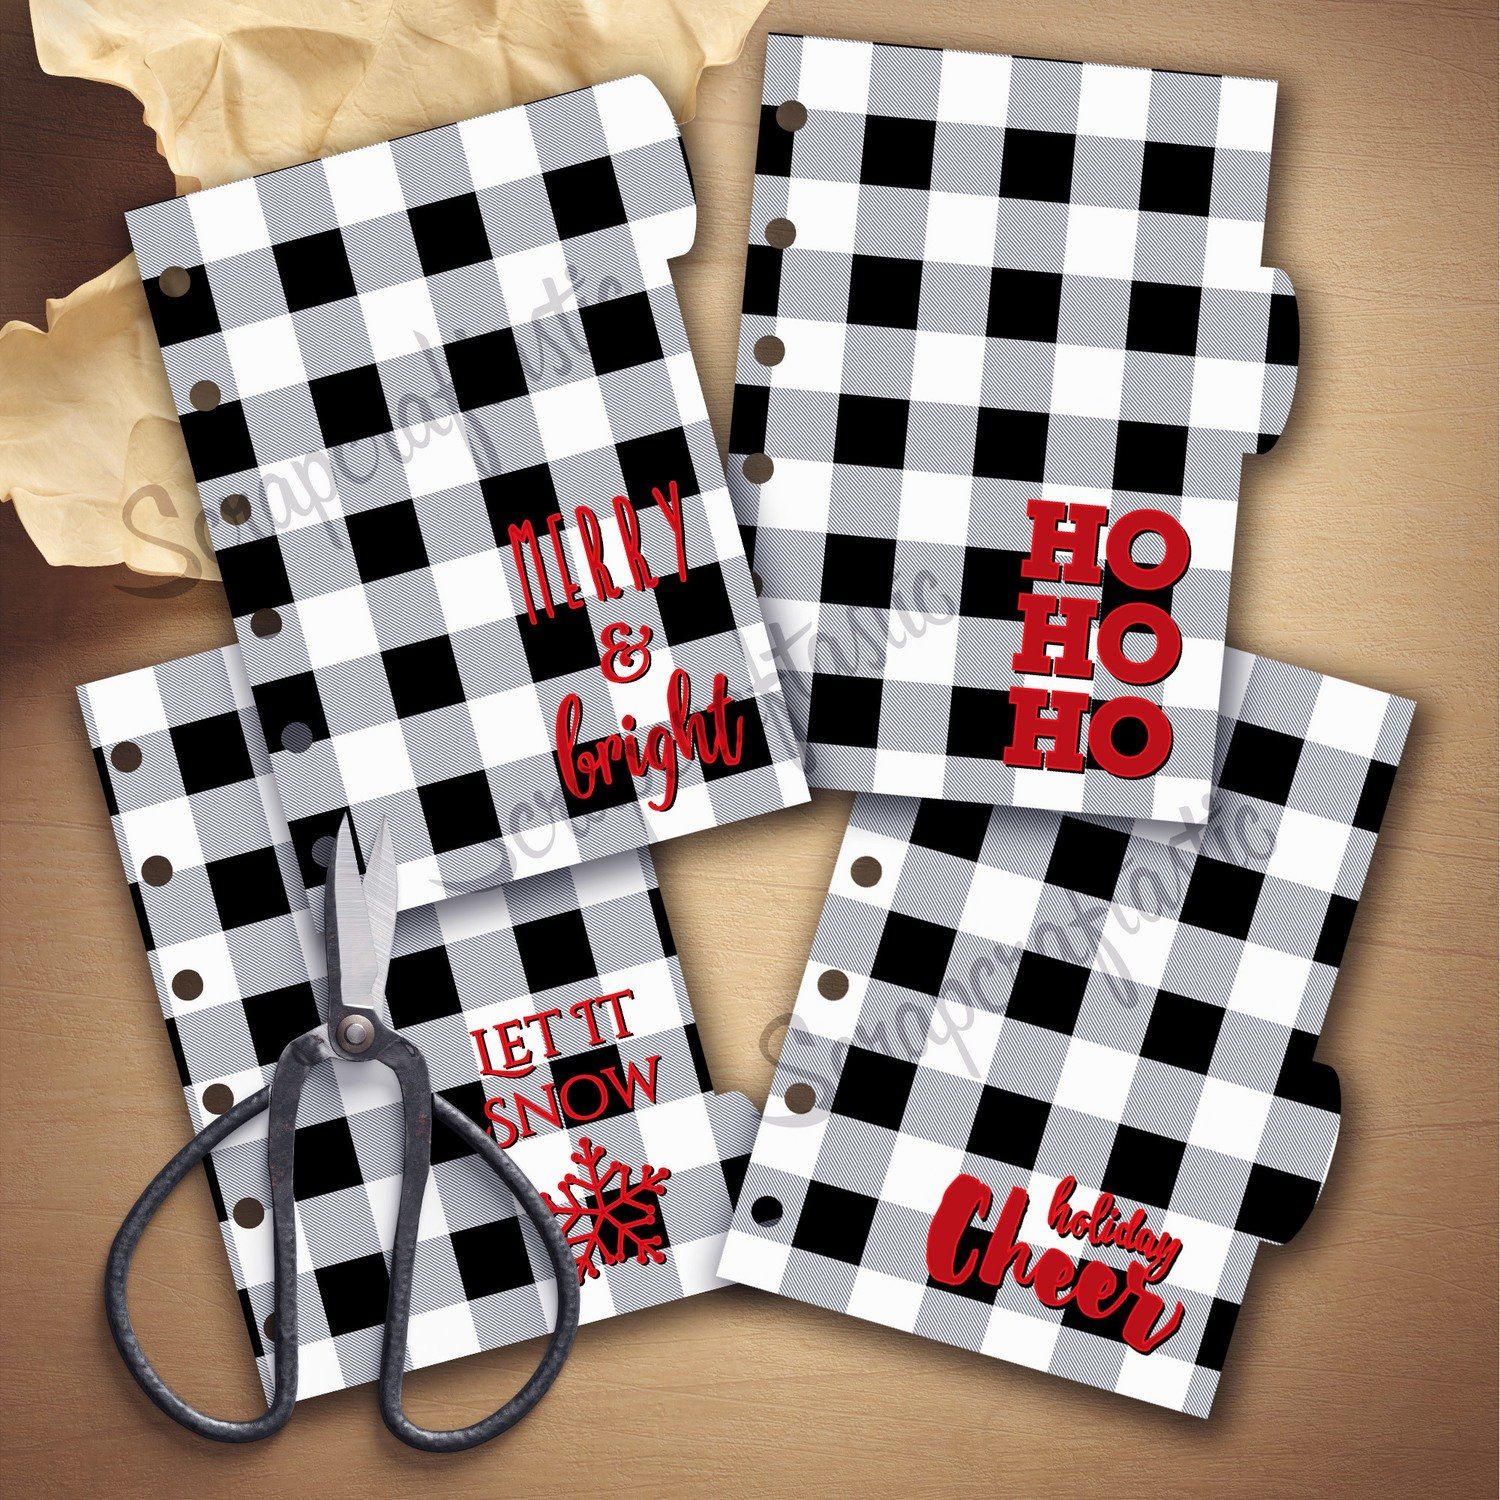 POCKET RINGS - Holiday Buffalo Plaid Black White 4 Rounded Tab Printable Dividers and Studio Cut File